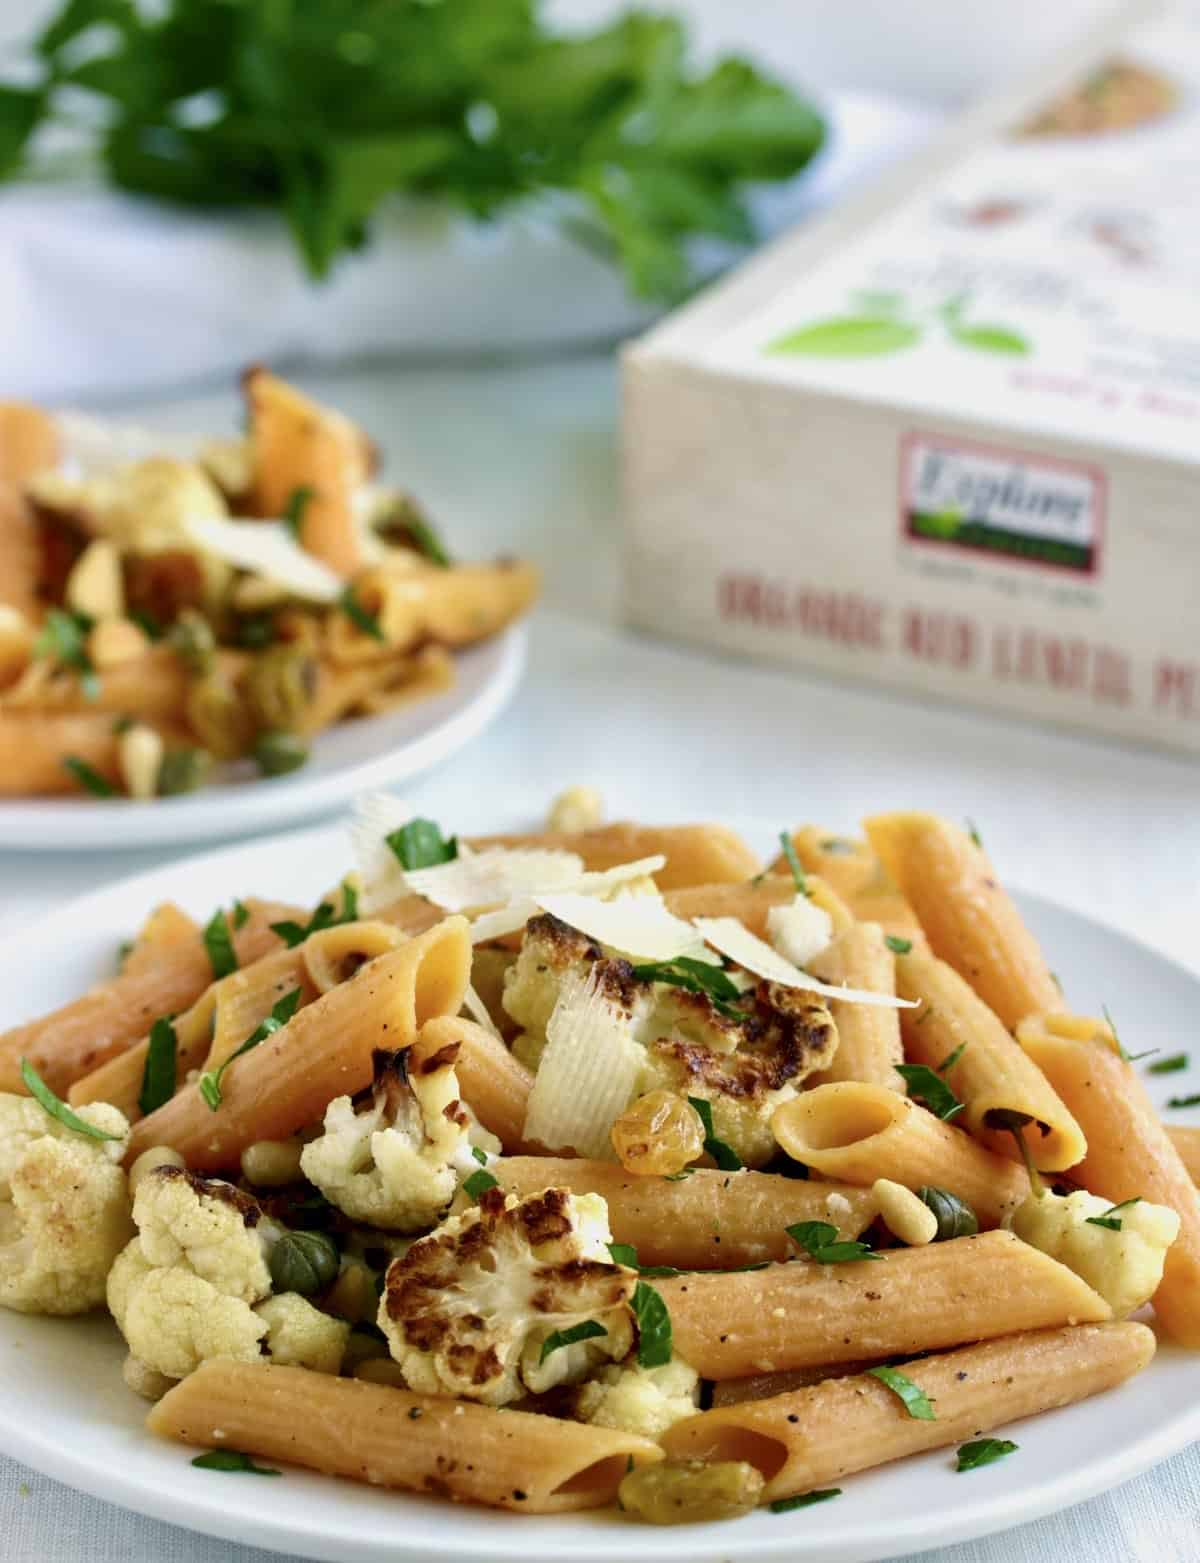 plates of penne pasta with cauliflower, herbs and product package